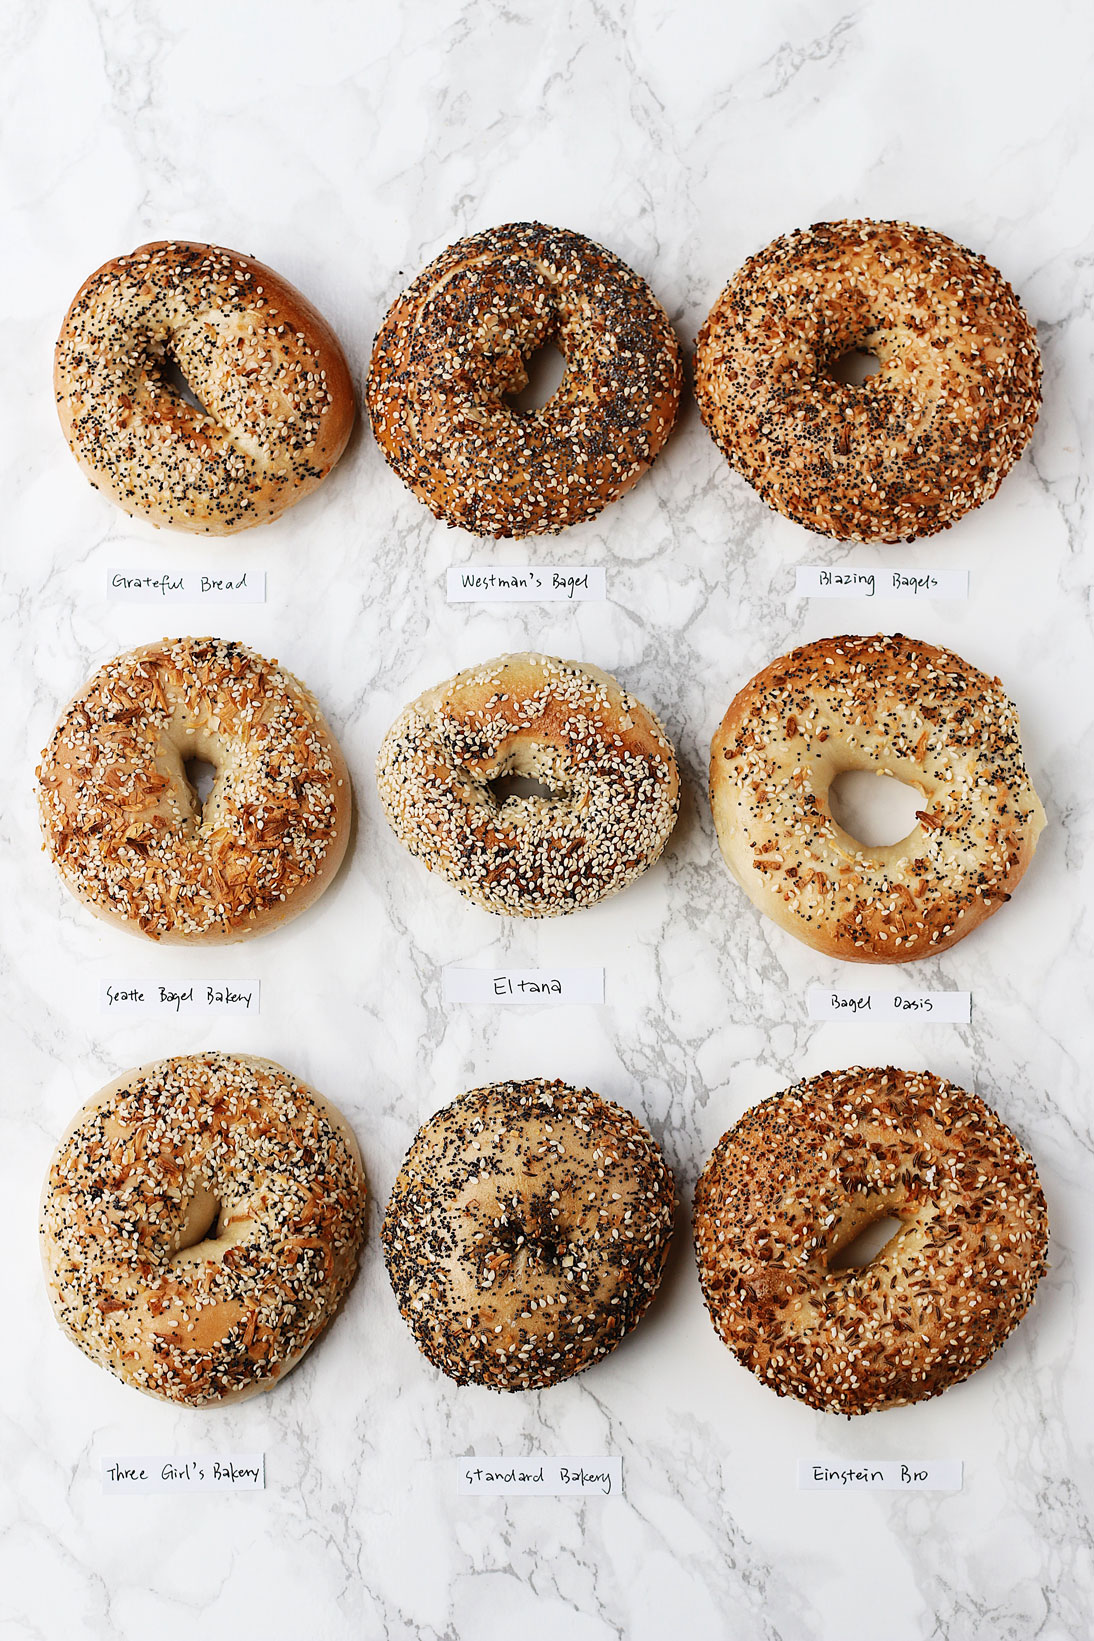 best-bagel-in-seattle-great-bagel-off-everything-bagel-all